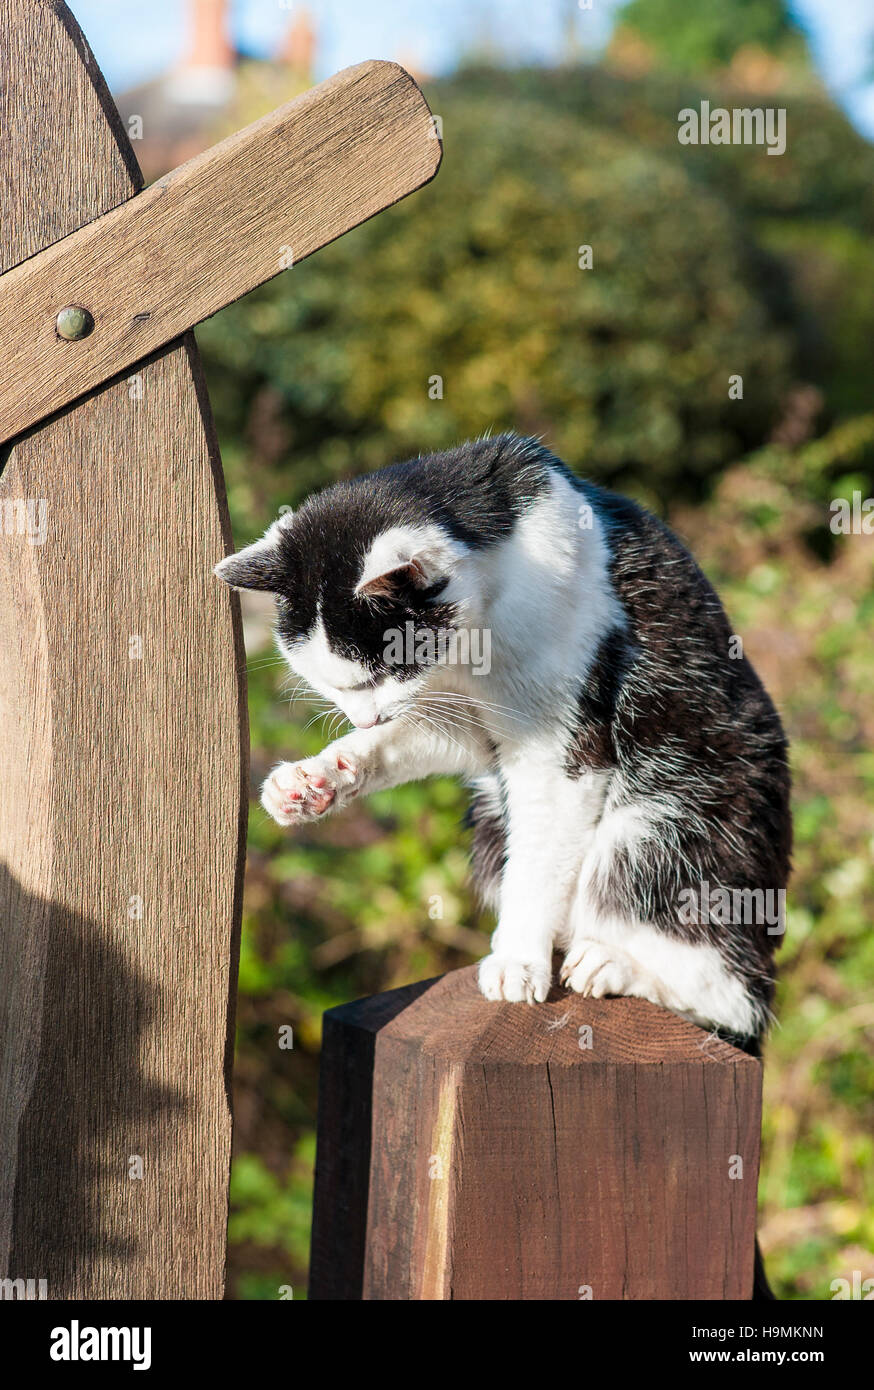 Black and white cat on a garden gate-post self-cleaning her coat - Stock Image